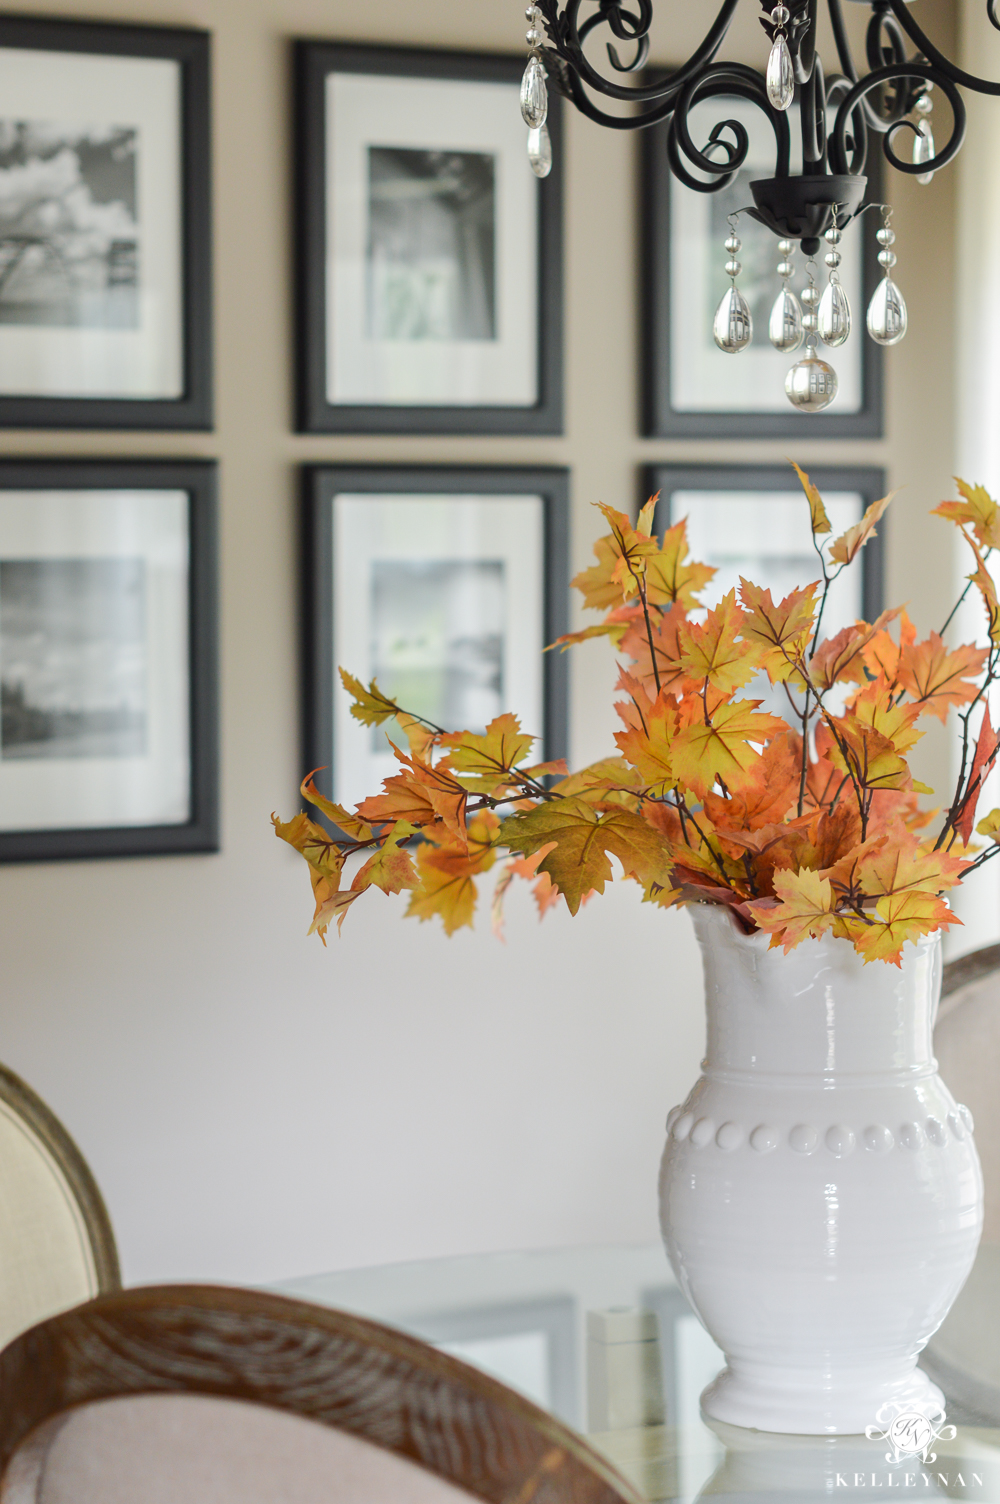 2017 Fall Home Tour with Yellow and Orange Leaves- white pitcher with leaves